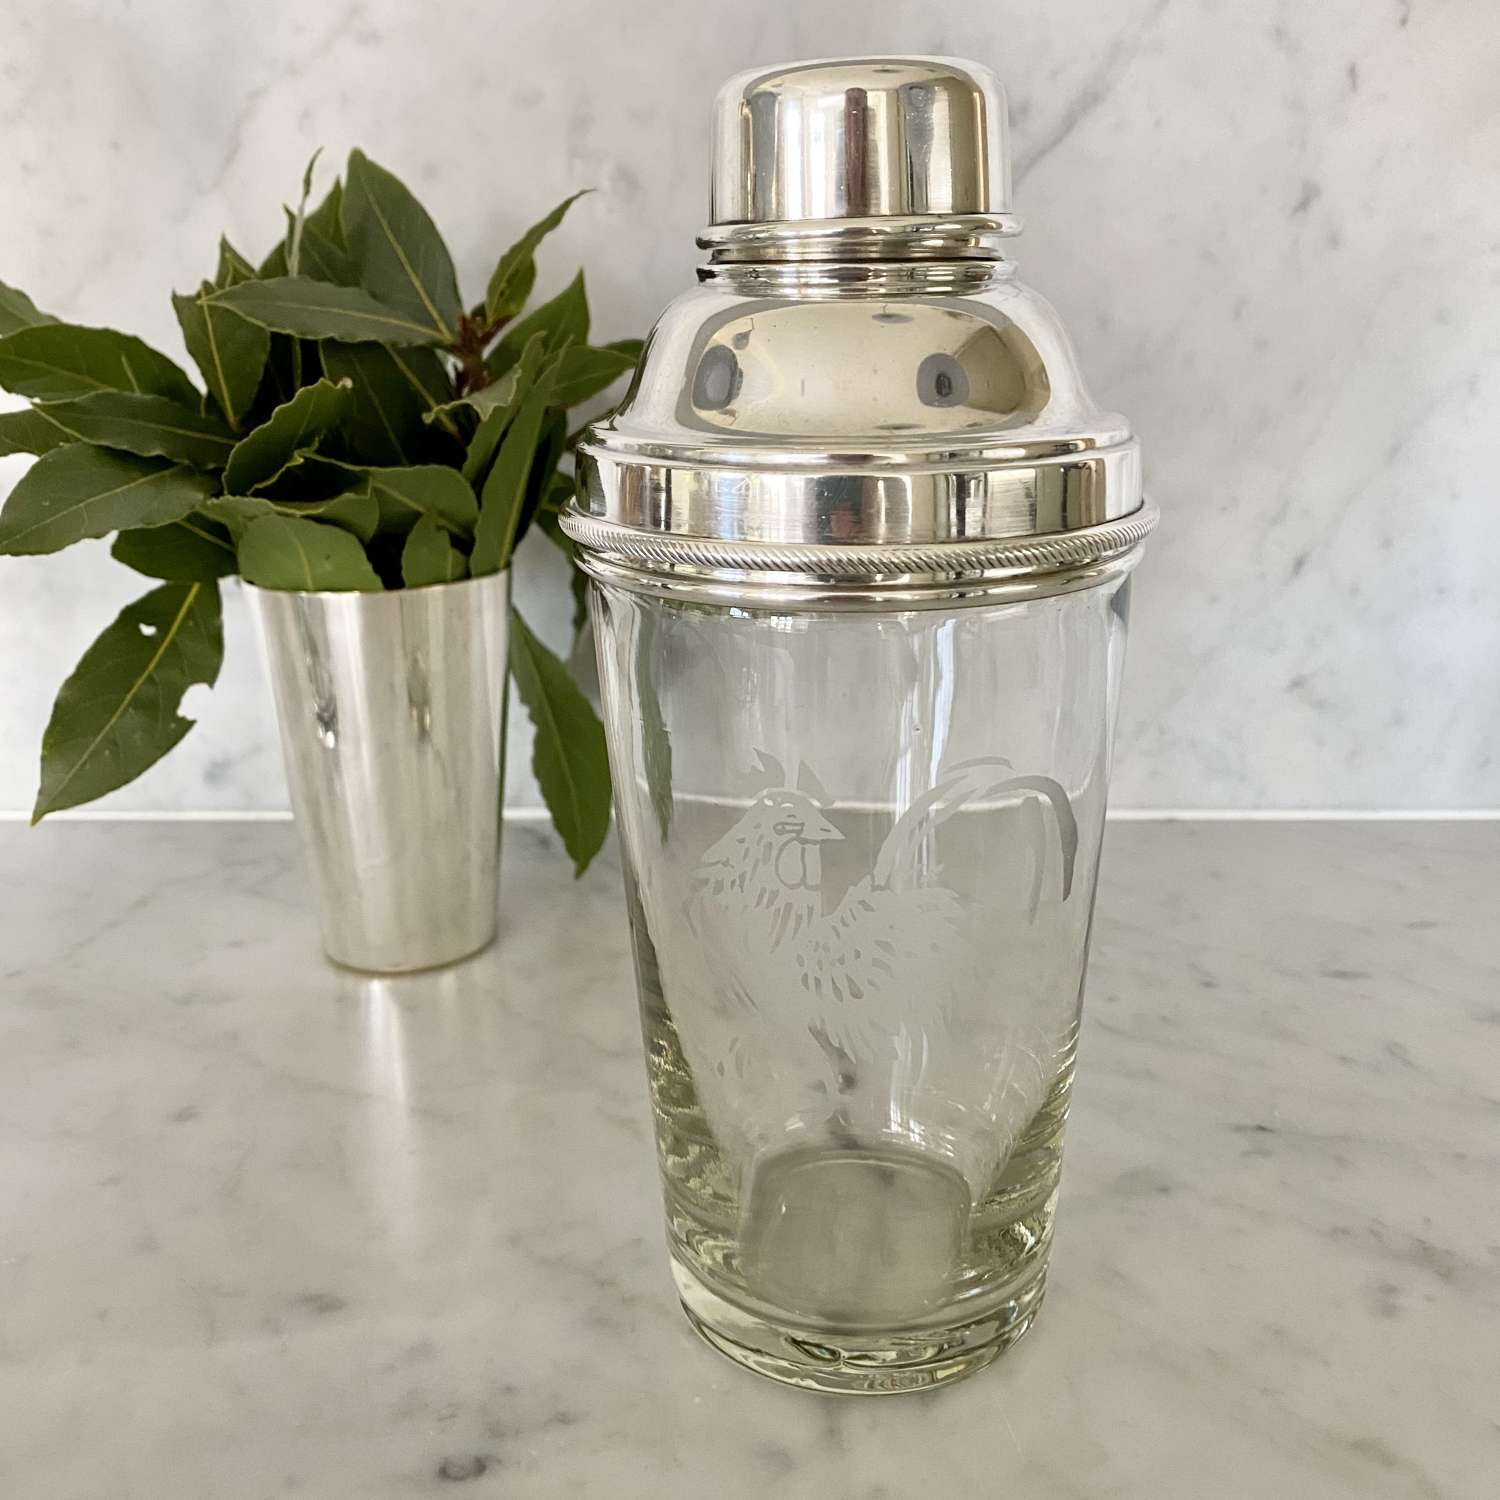 Art Deco cockerel etched silver plated cocktail shaker